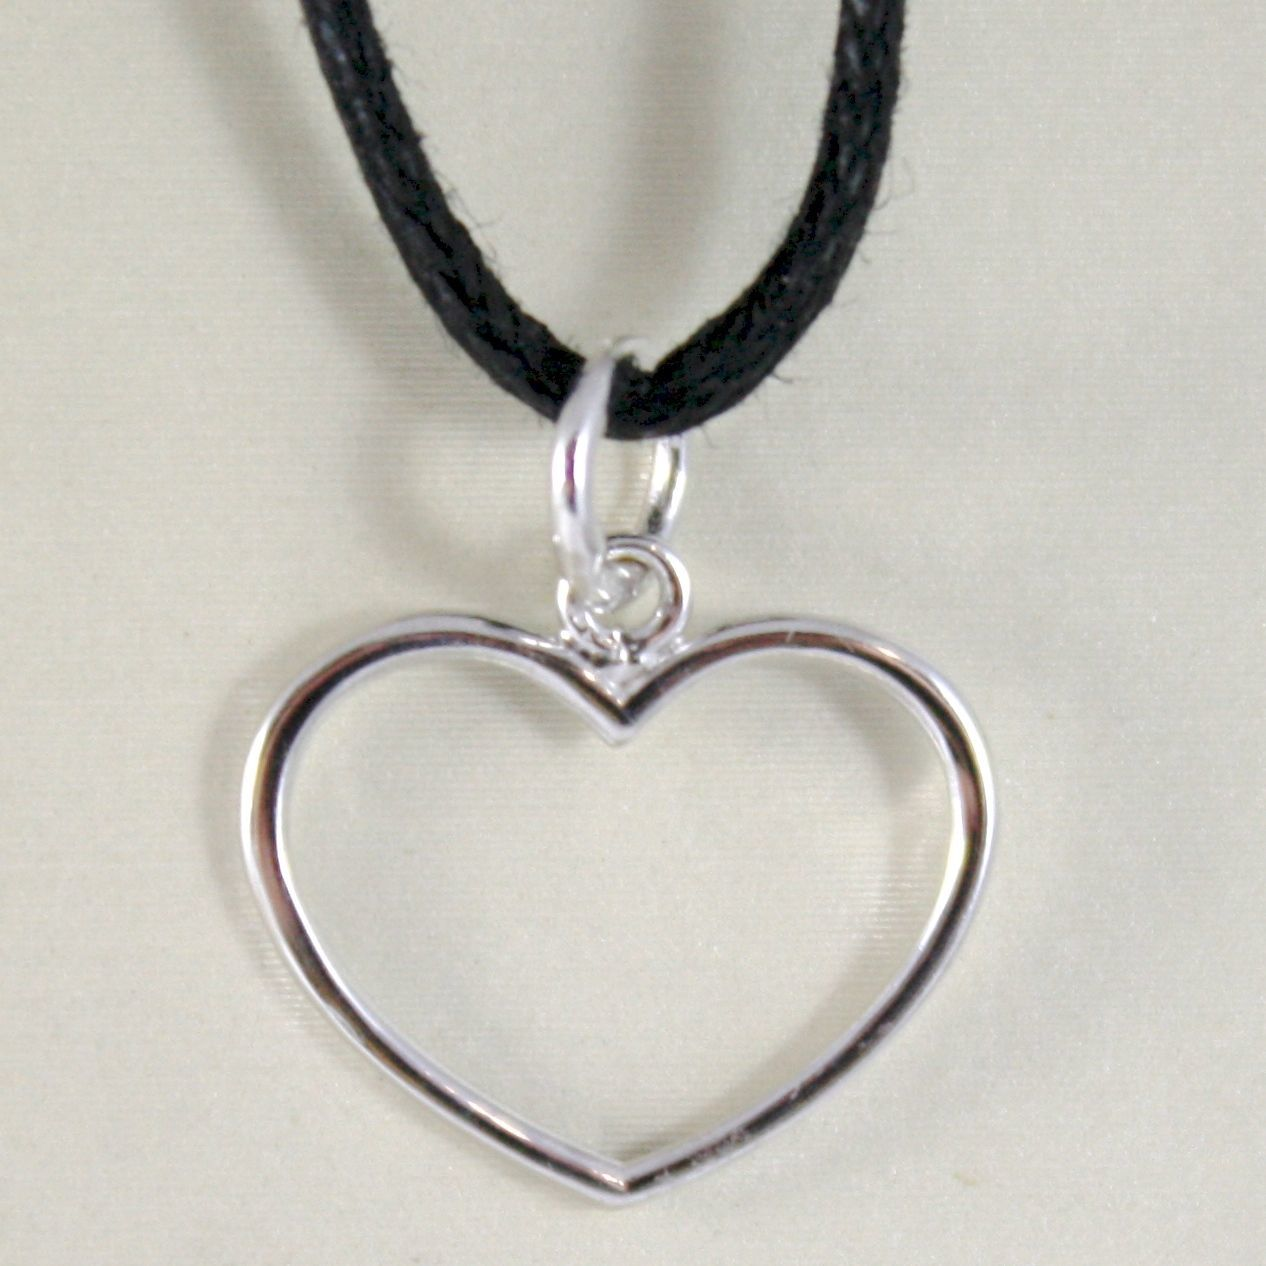 WHITE GOLD PENDANT 750 18K, HEART, LONG 1.7 CM, PENDANT, MADE IN ITALY